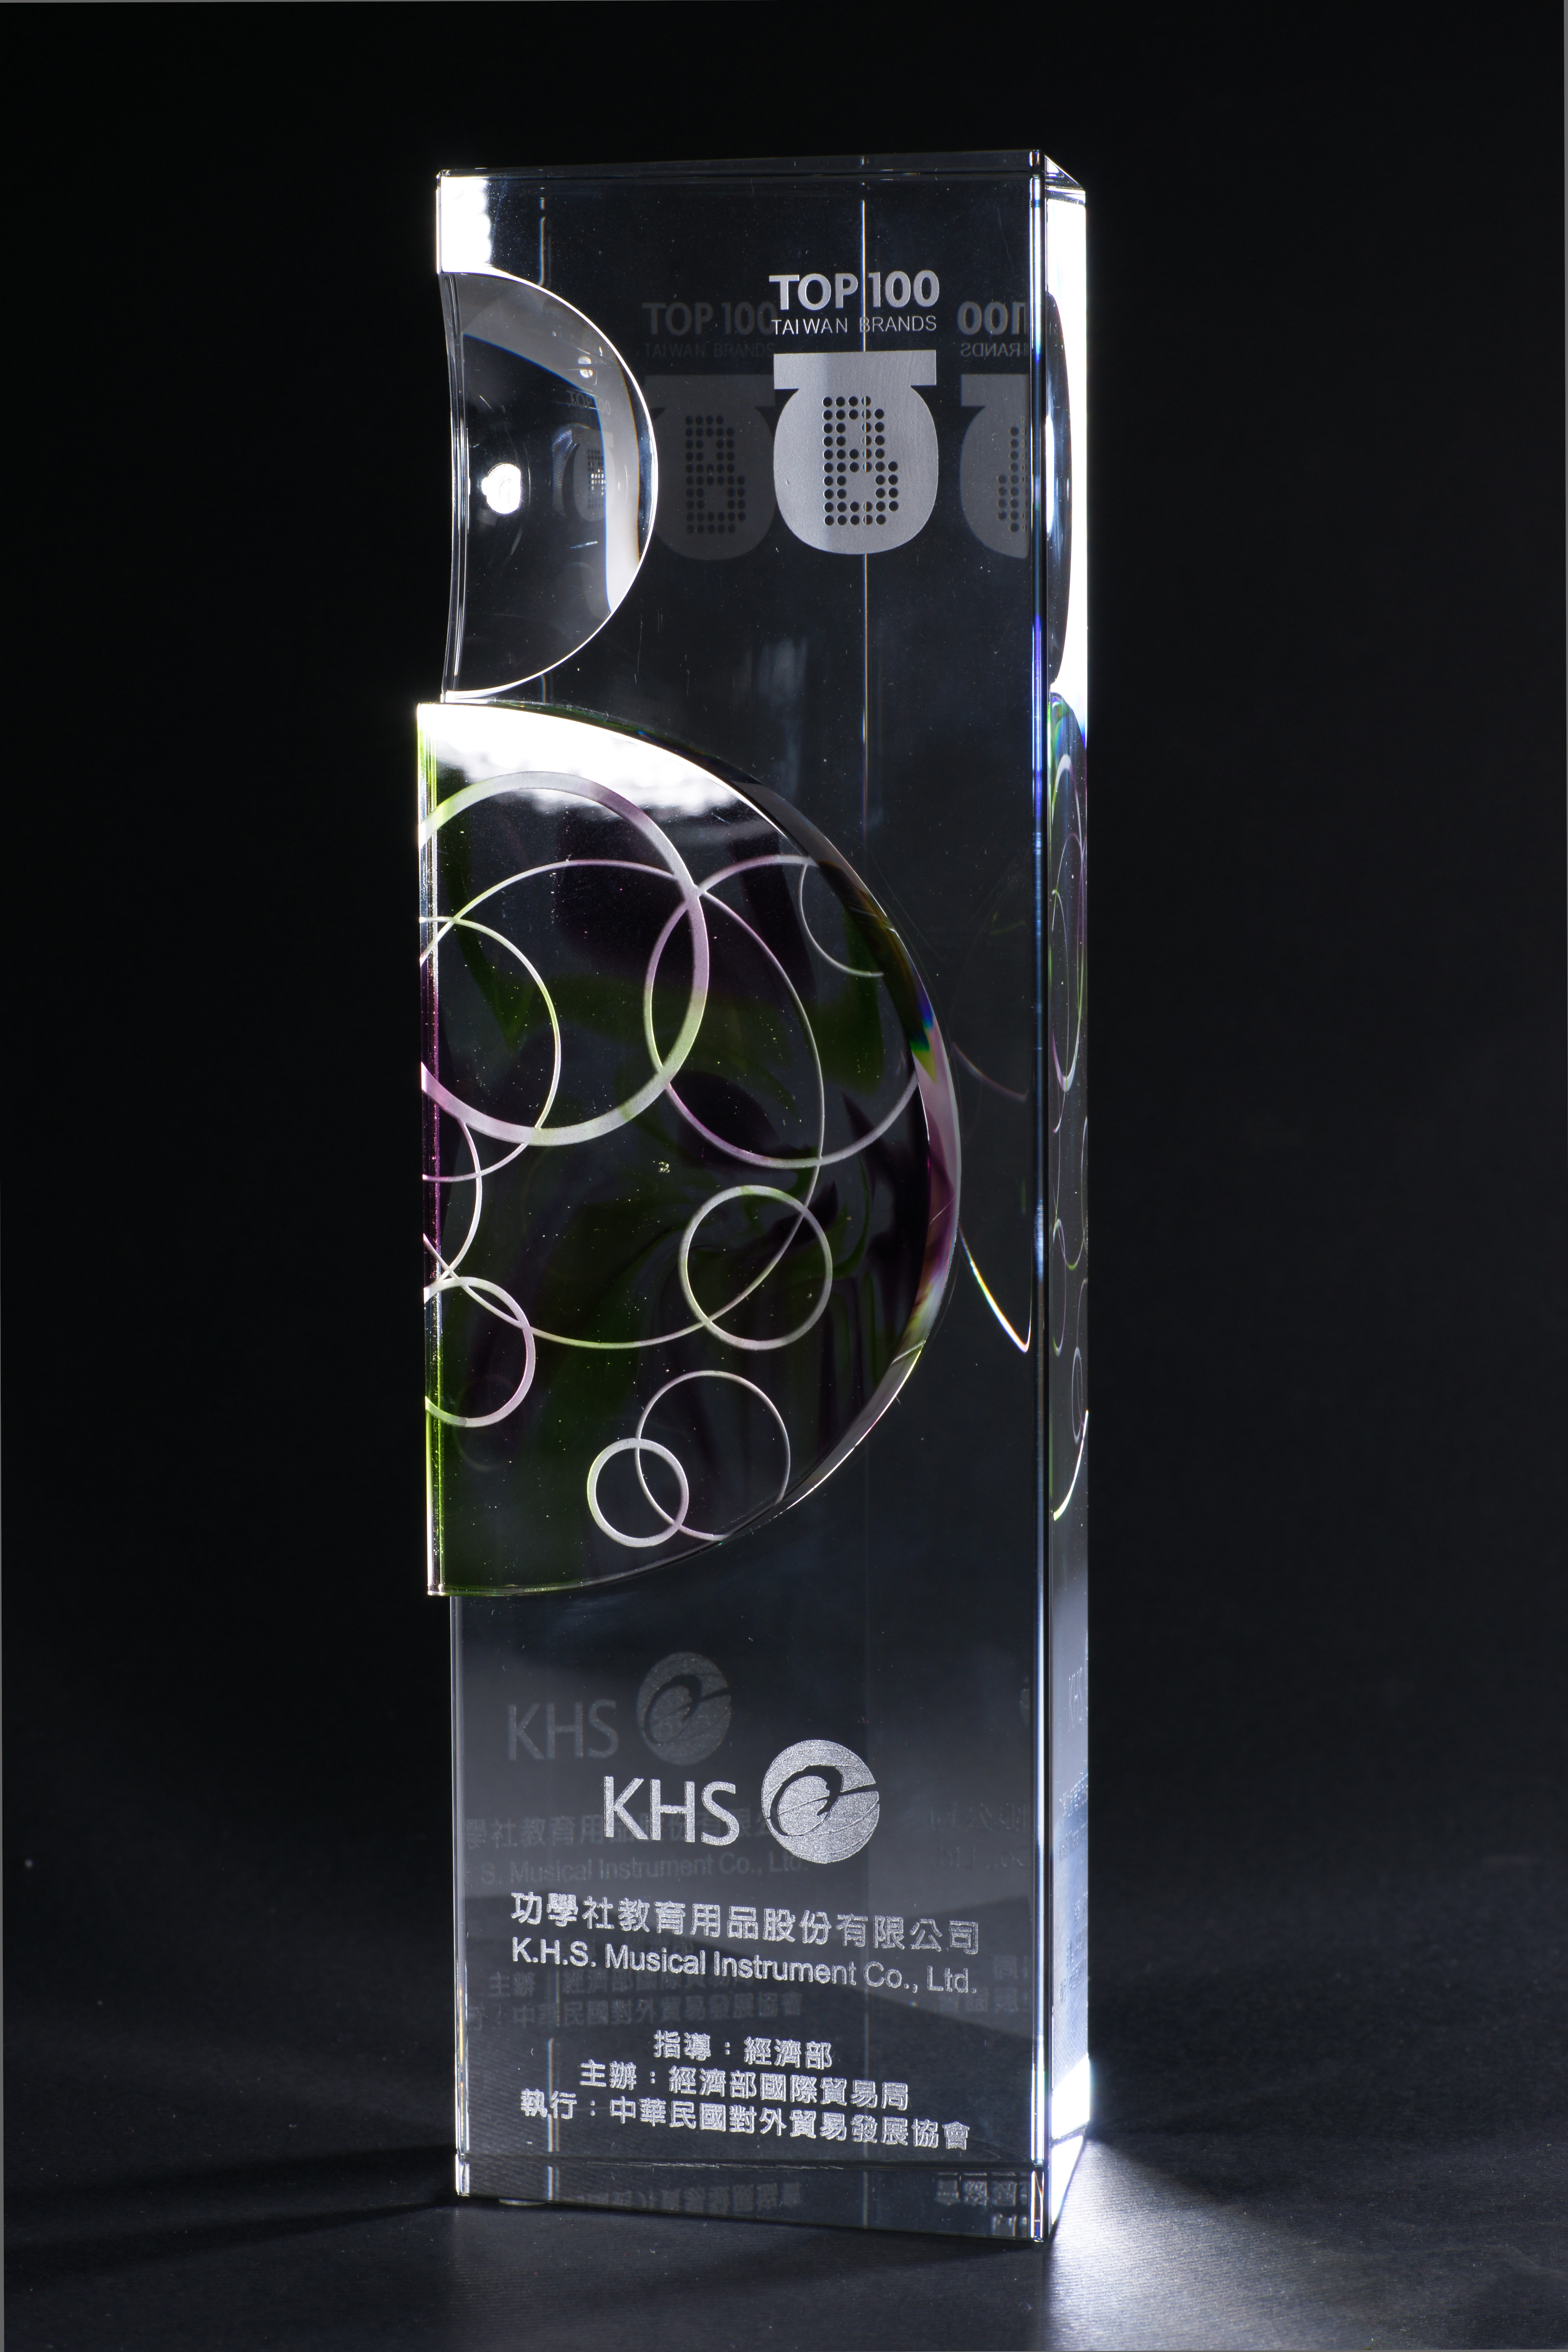 KHS-Music -- 20110801 - KHS Named One of Top 100 Taiwan Brands